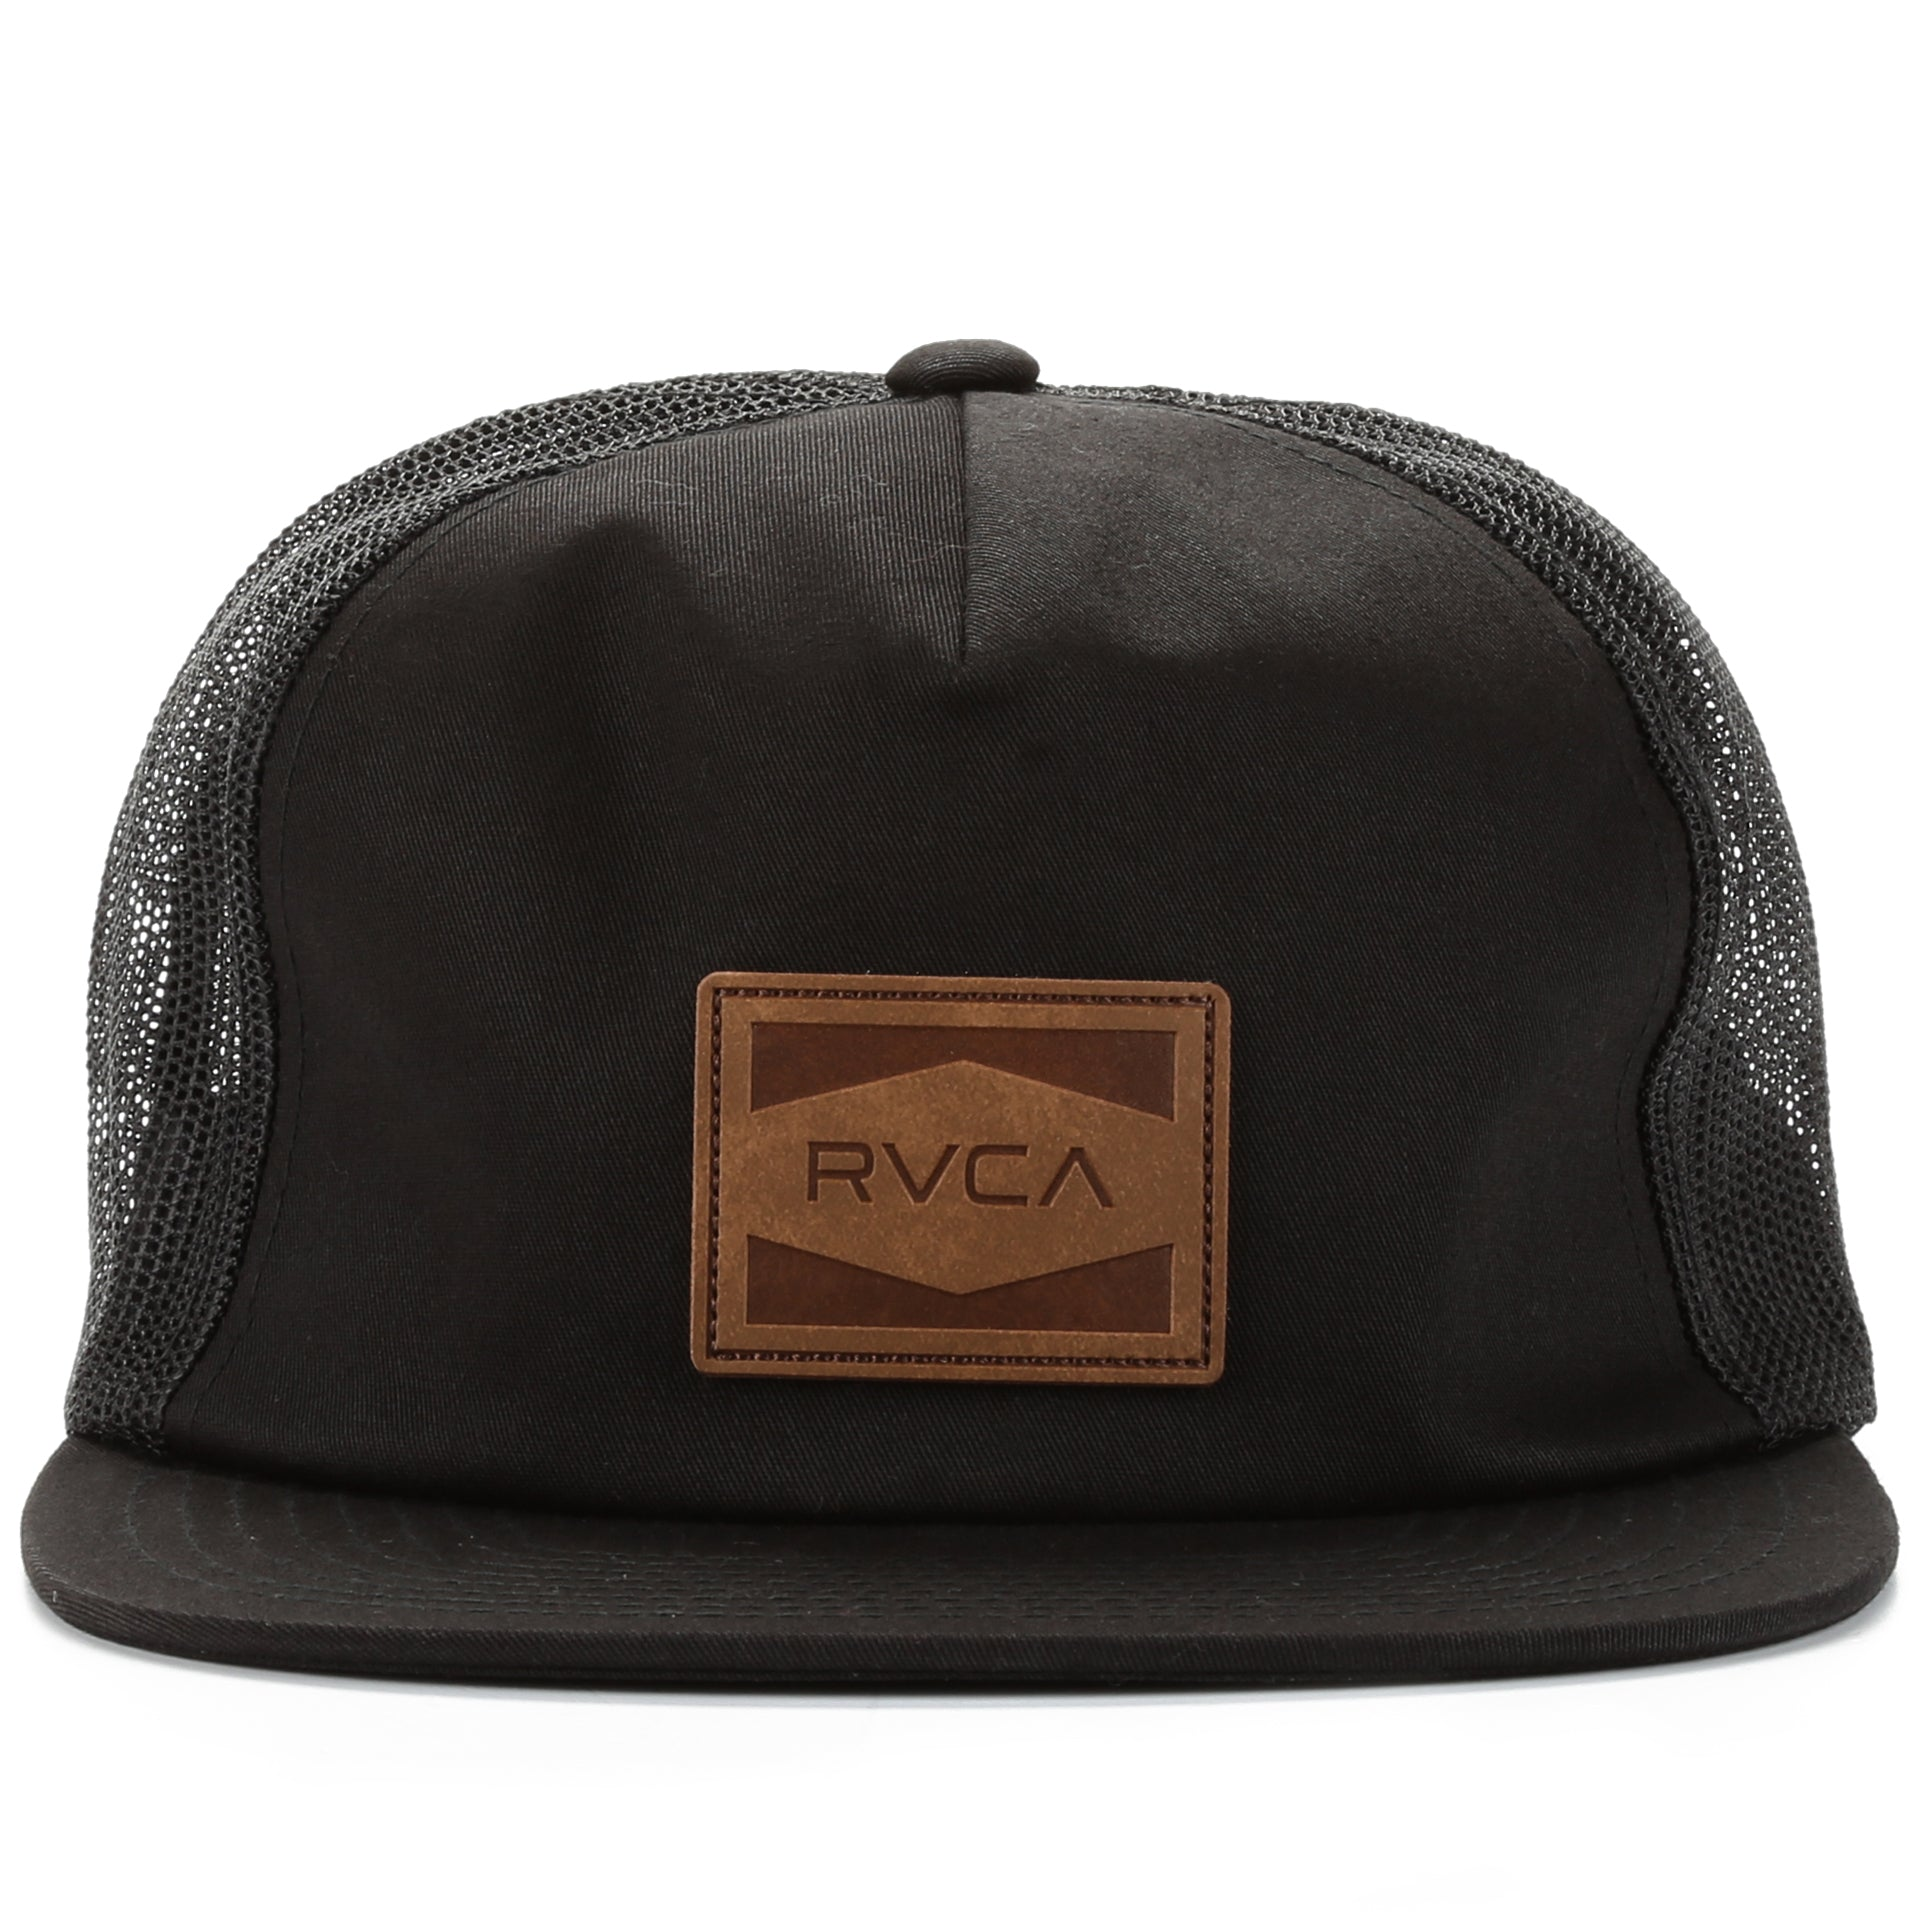 eac5e7c4b1 RVCA Washburn Trucker Hat - Black - New Star